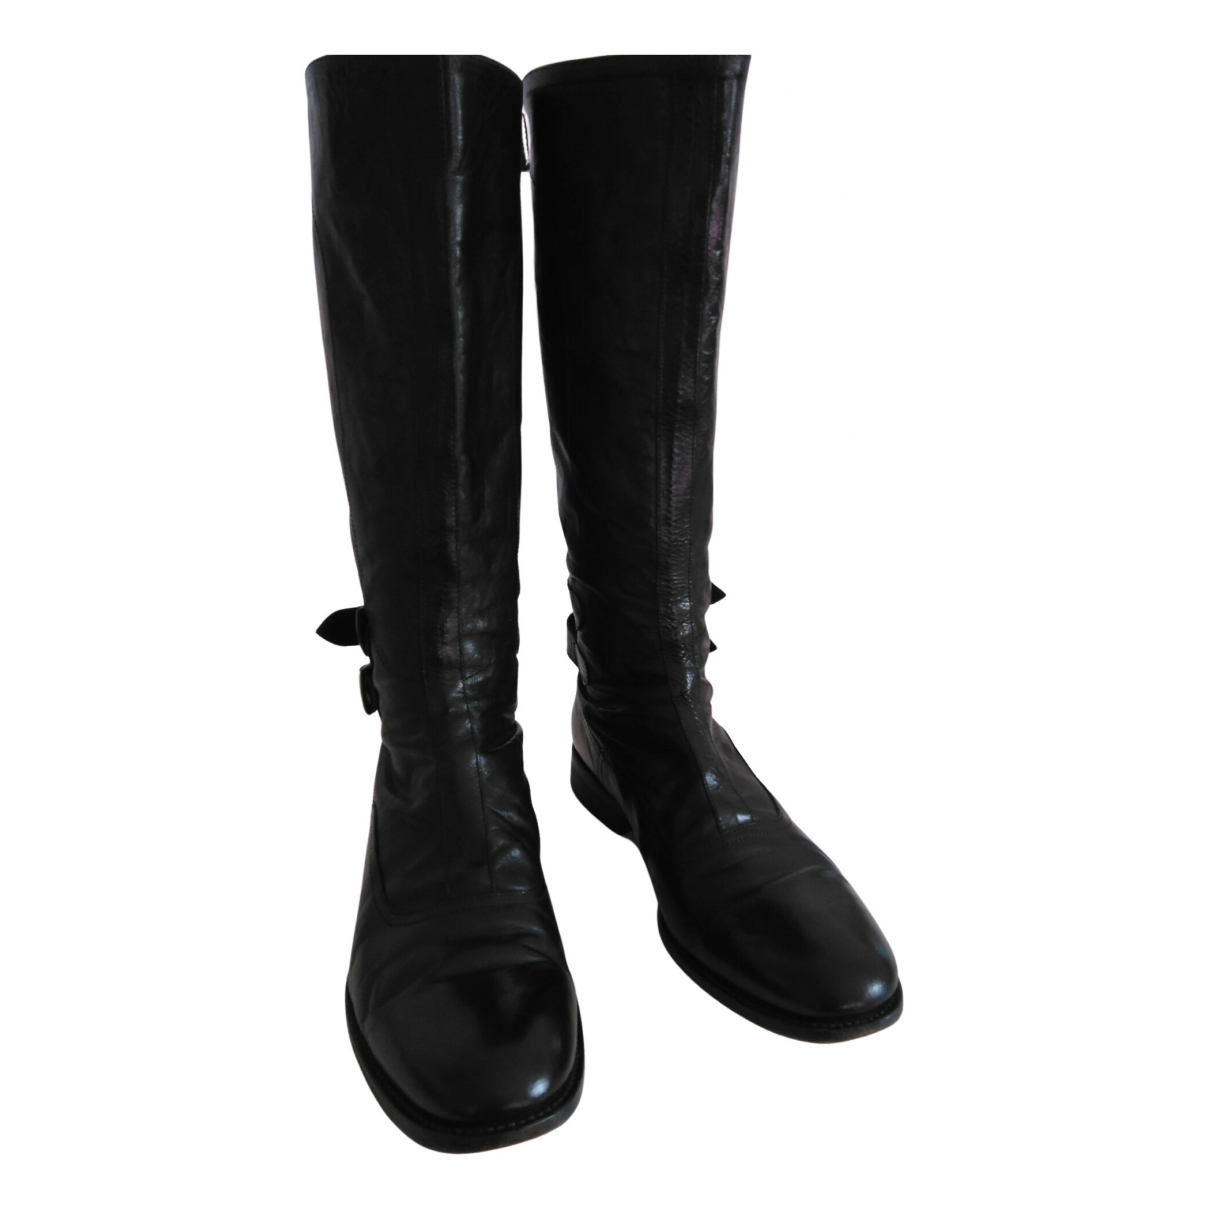 Paul Smith N Black Leather Boots for Women 40 EU